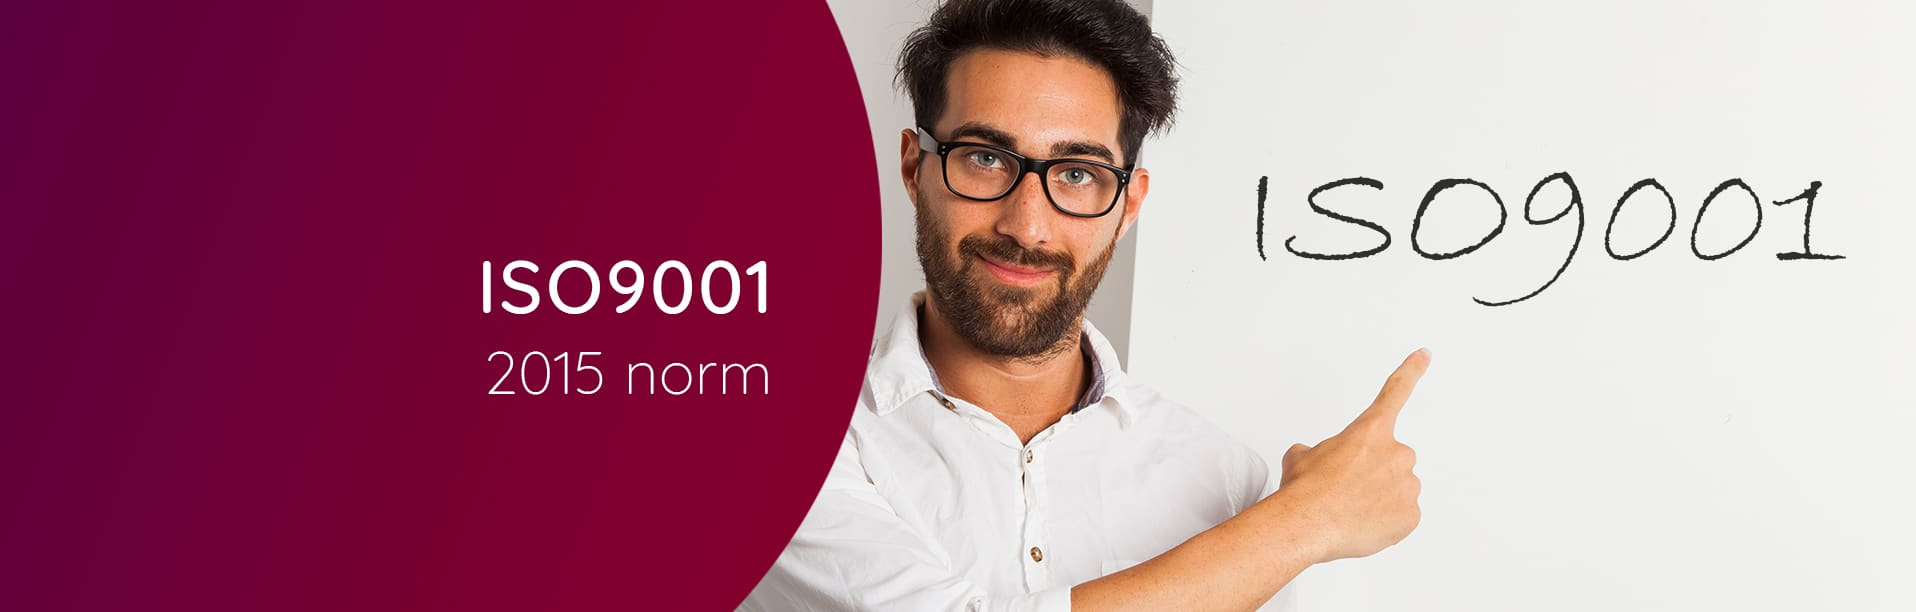 iso9001 norm